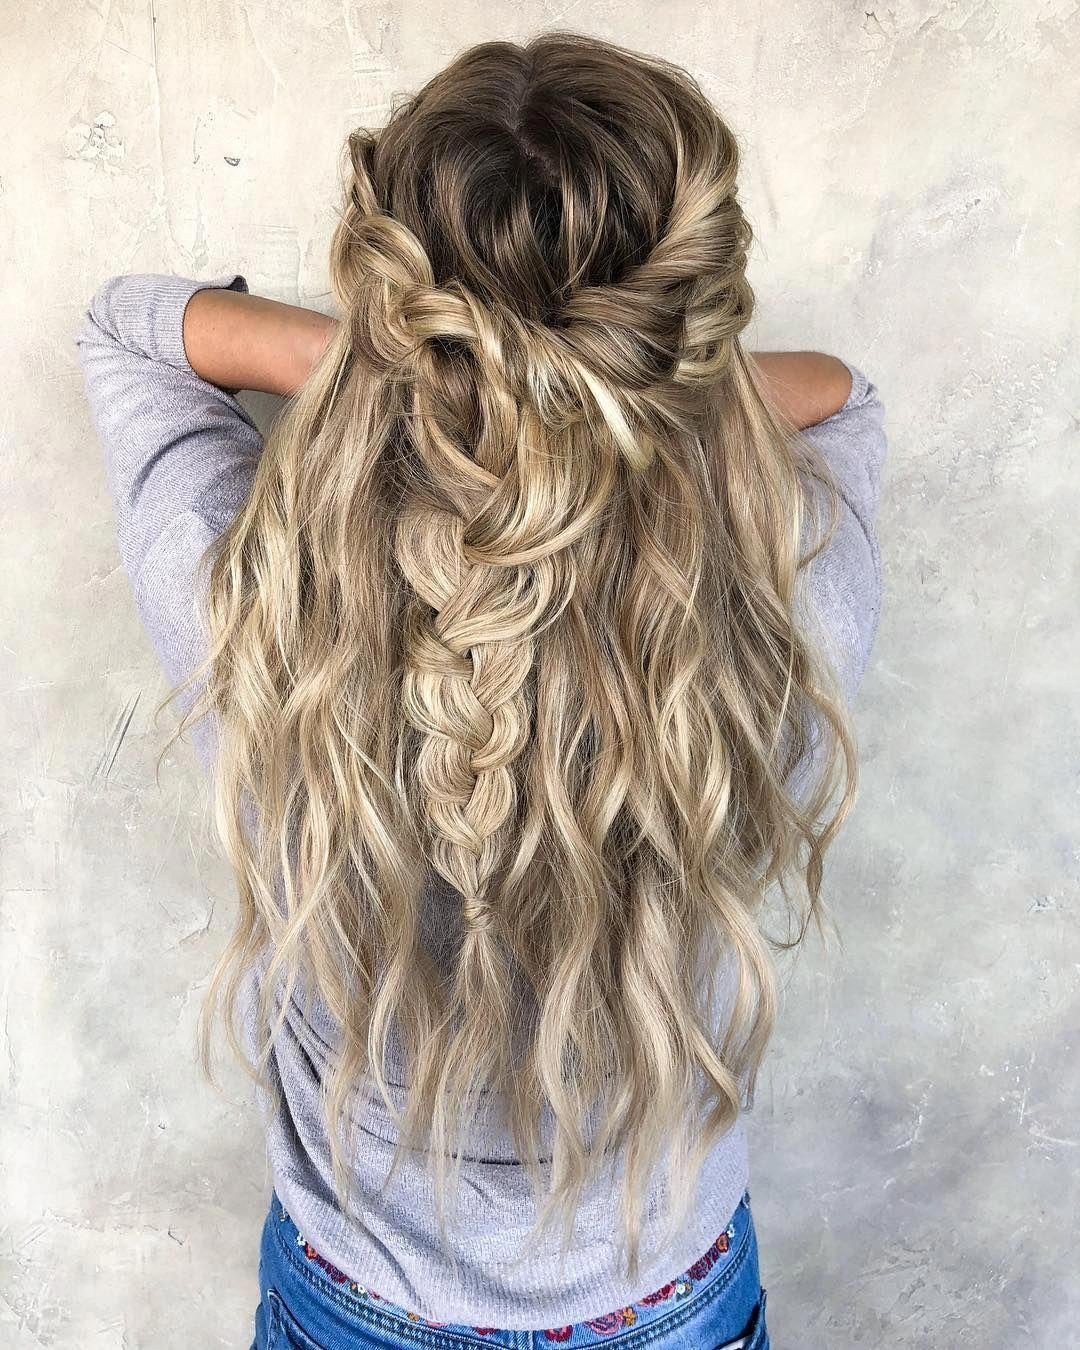 "49 Boho Braid Hairstyles to Try – Blonde hair + braid half up half down hairstyle <a class=""pintag"" href=""/explore/braids/"" title=""#braids explore Pinterest"">#braids</a> <a class=""pintag"" href=""/explore/hairstyles/"" title=""#hairstyles explore Pinterest"">#hairstyles</a> <a class=""pintag"" href=""/explore/bohohairstyles/"" title=""#bohohairstyles explore Pinterest"">#bohohairstyles</a> <a class=""pintag"" href=""/explore/promhairstyleshalfuphalfdown/"" title=""#promhairstyleshalfuphalfdown explore Pinterest"">#promhairstyleshalfuphalfdown</a><p><a href=""http://www.homeinteriordesign.org/2018/02/short-guide-to-interior-decoration.html"">Short guide to interior decoration</a></p>"